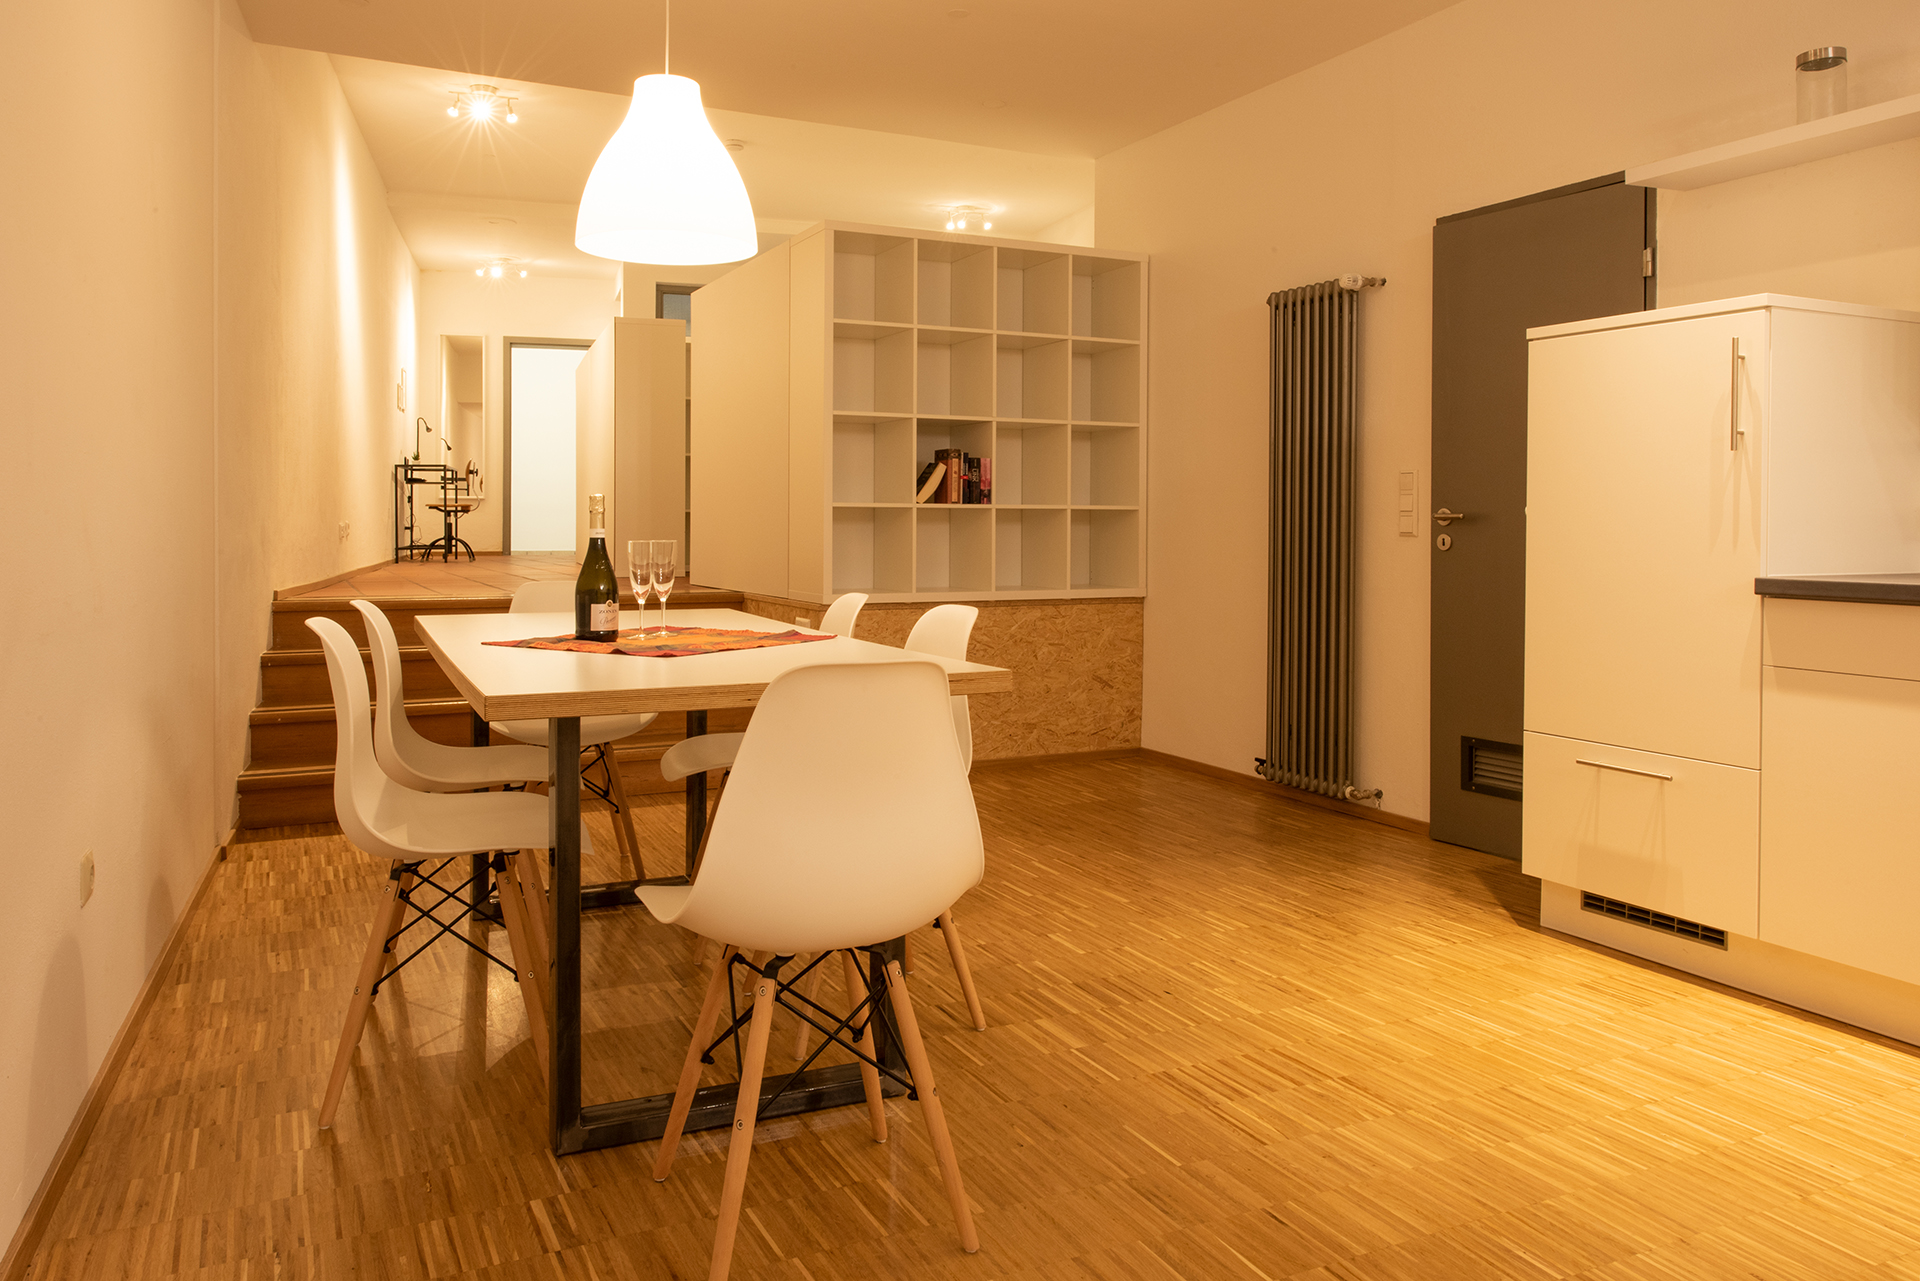 Business Apartment am Bodensee - Essbereich